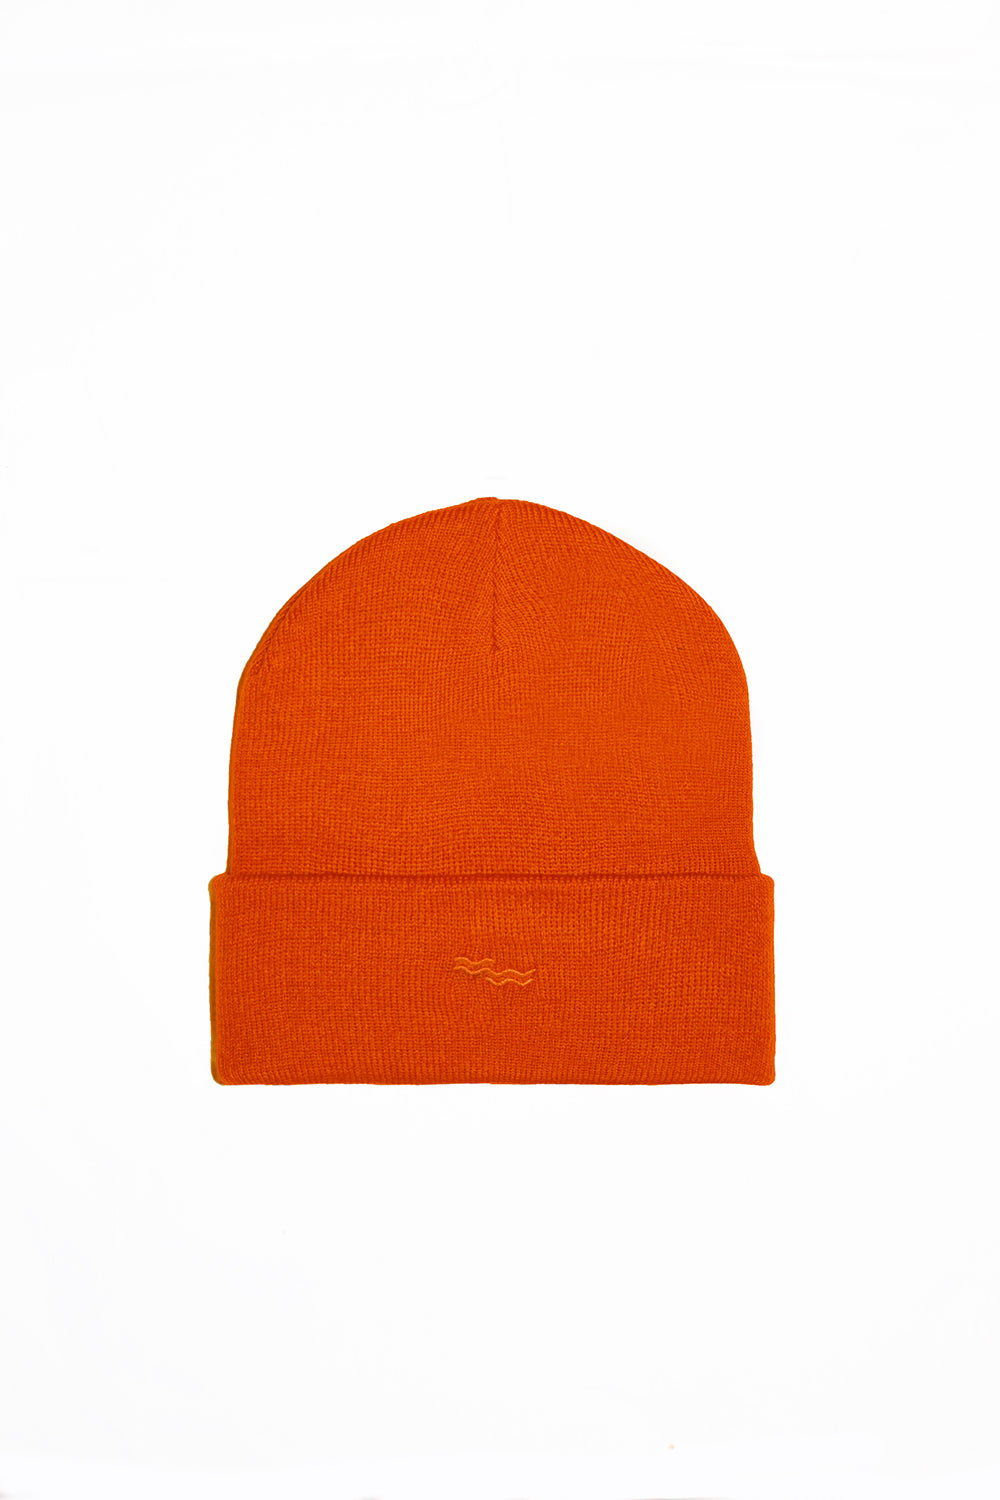 THE ORANGE IS THE NEW BLACK BEANIE